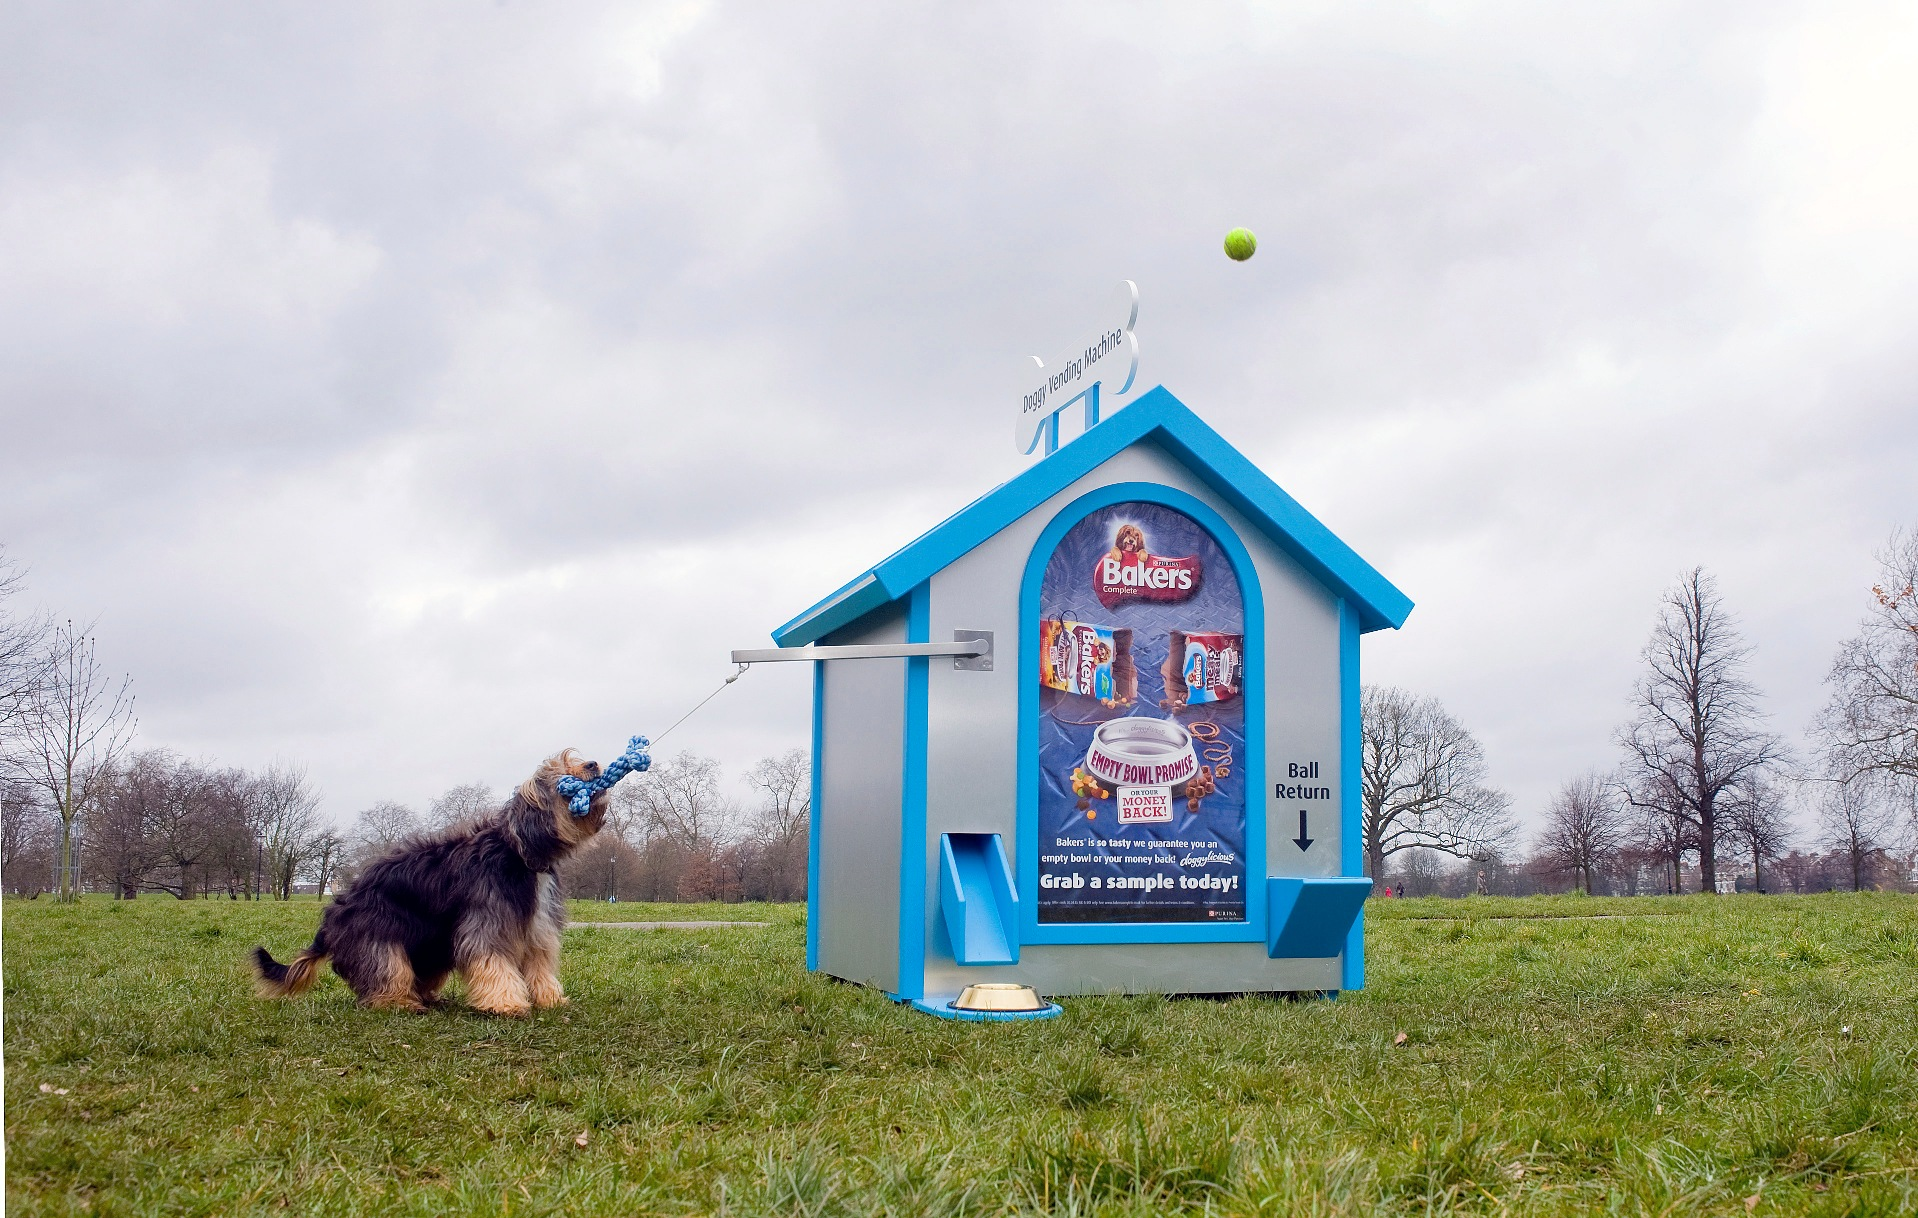 Bakers doggy vending machine arrives on Clapham Common